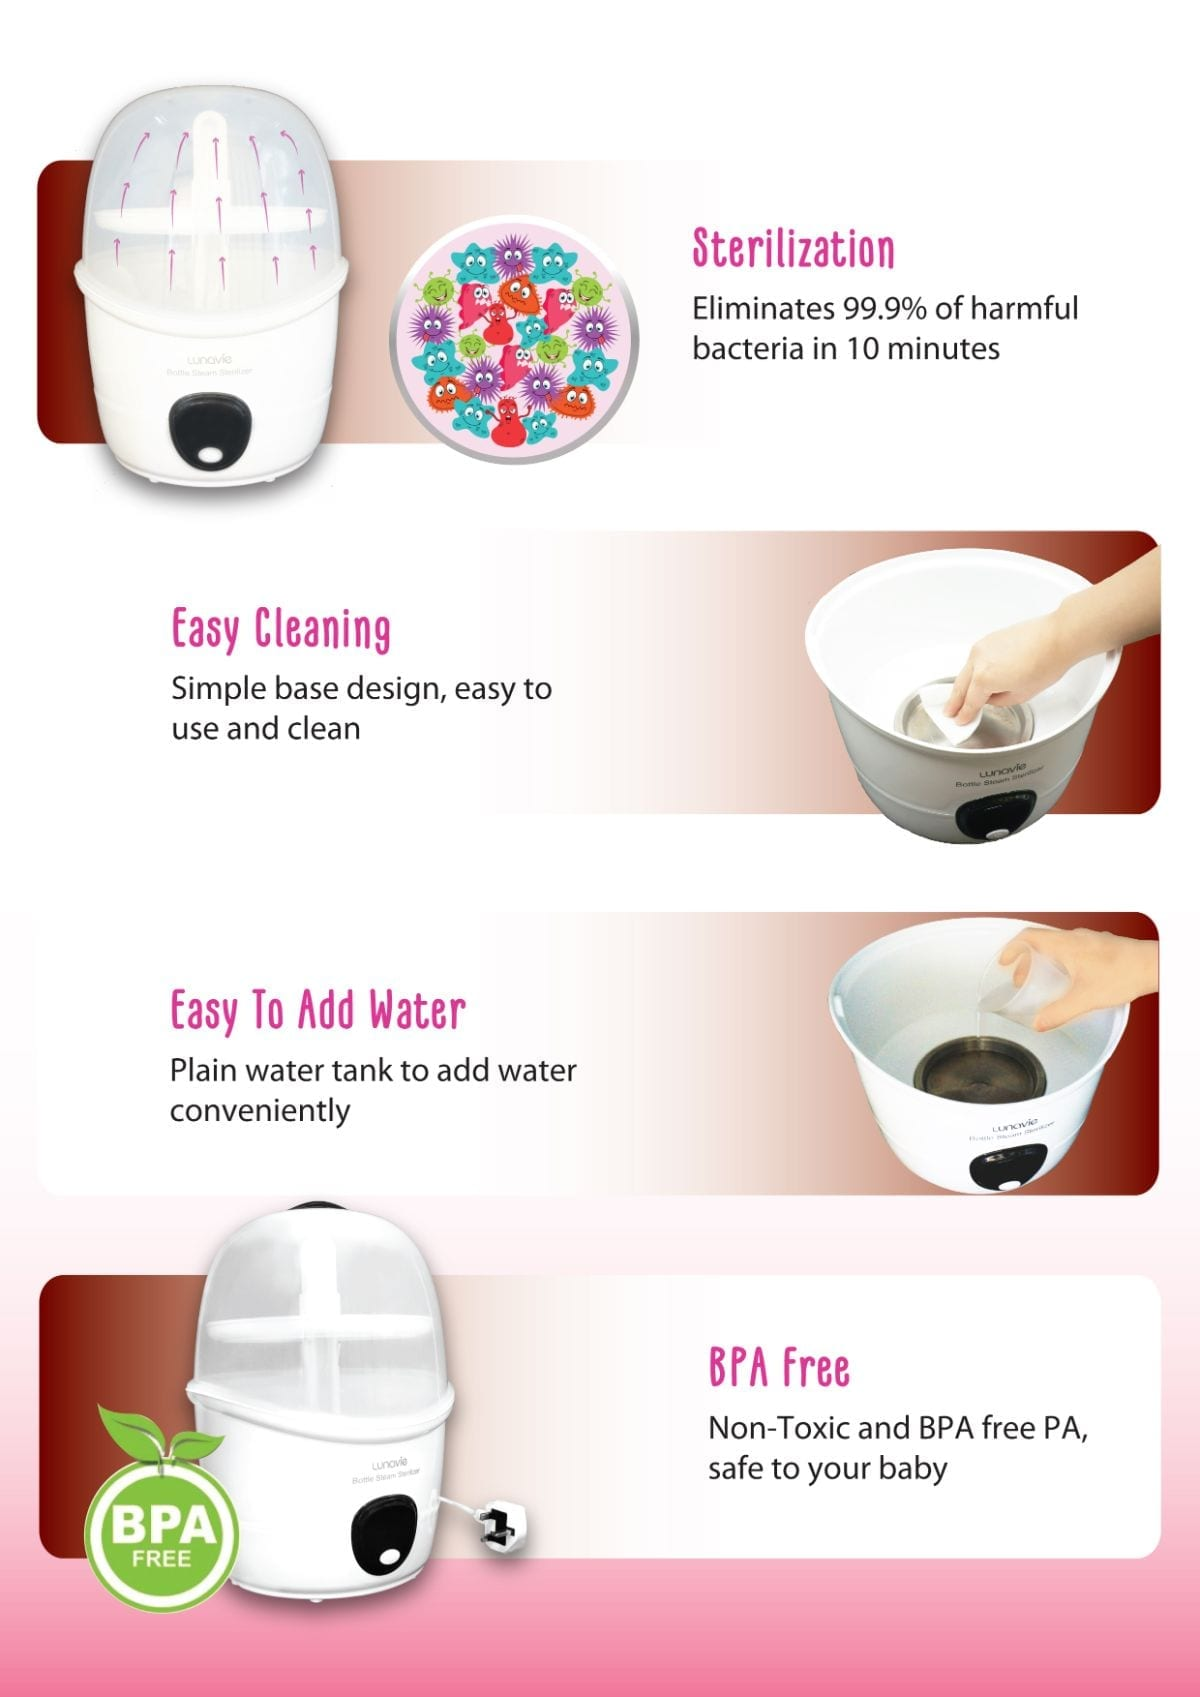 Sterilization | Easy Cleaning | Easy to Add Water | BPA Free